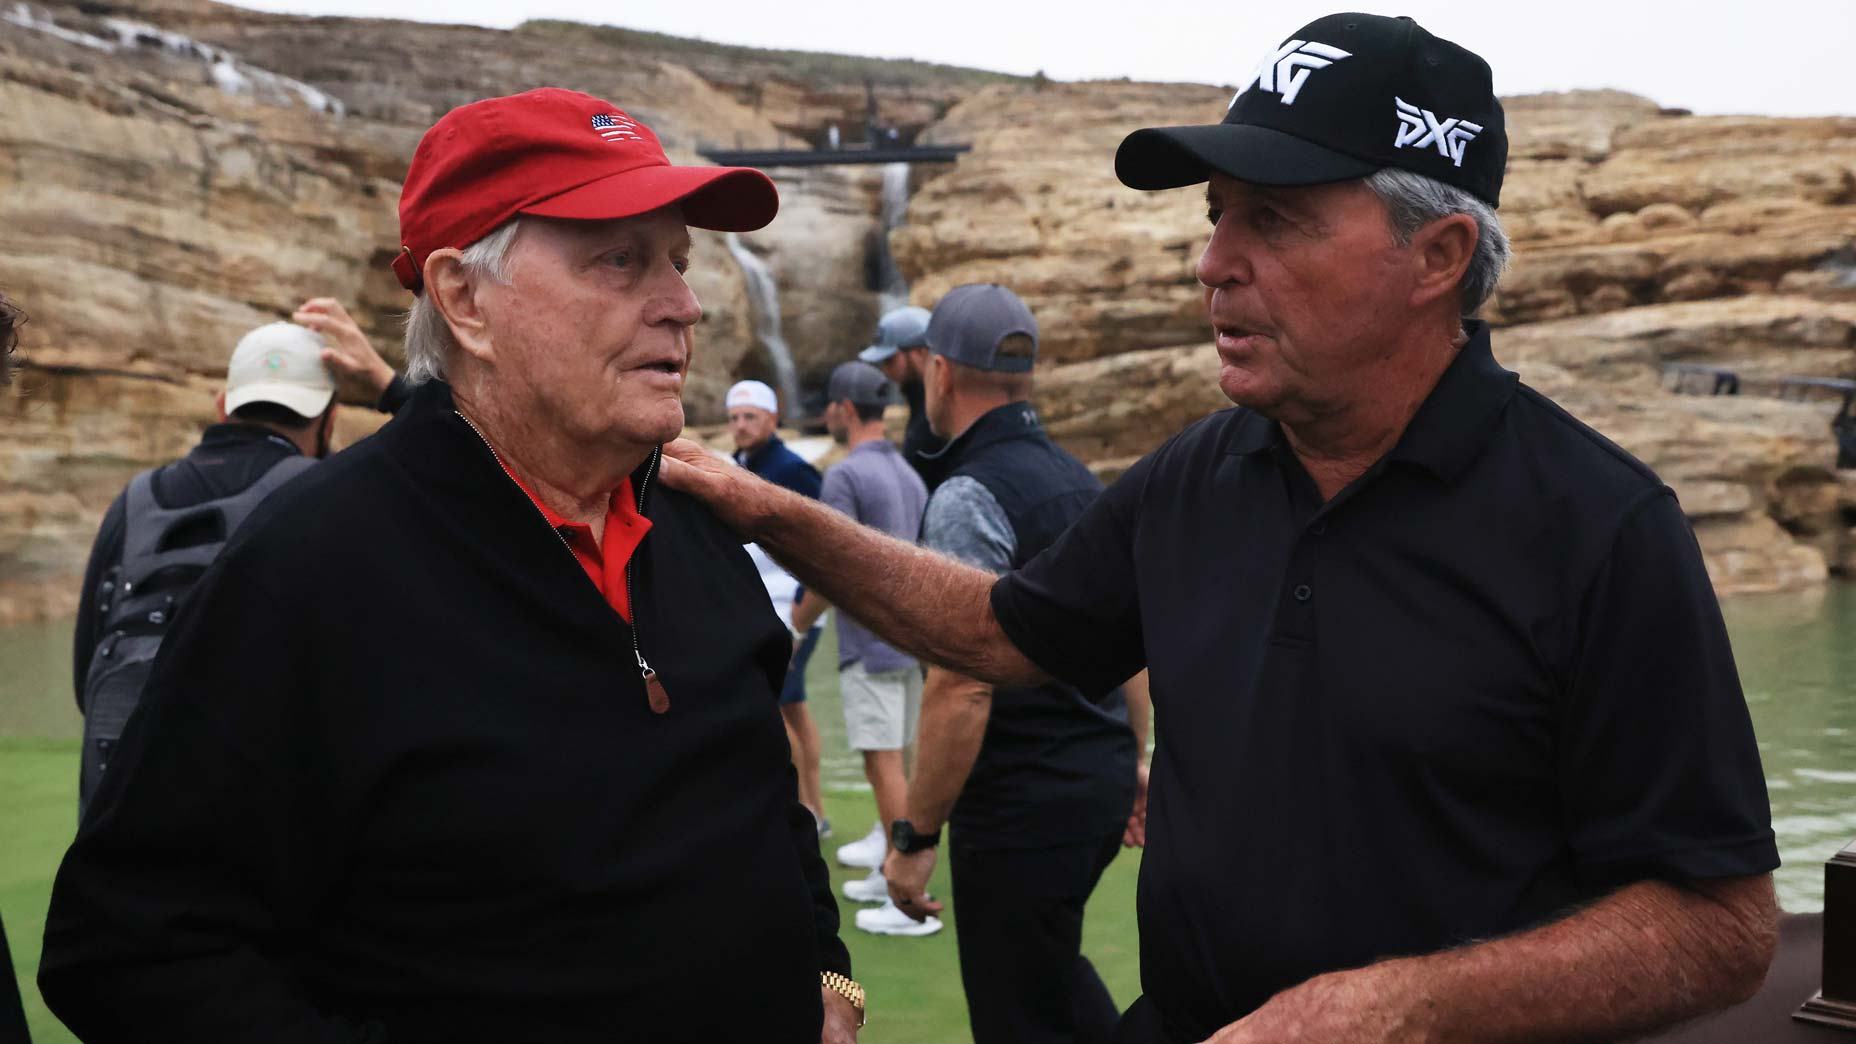 jack nicklaus and gary player talk